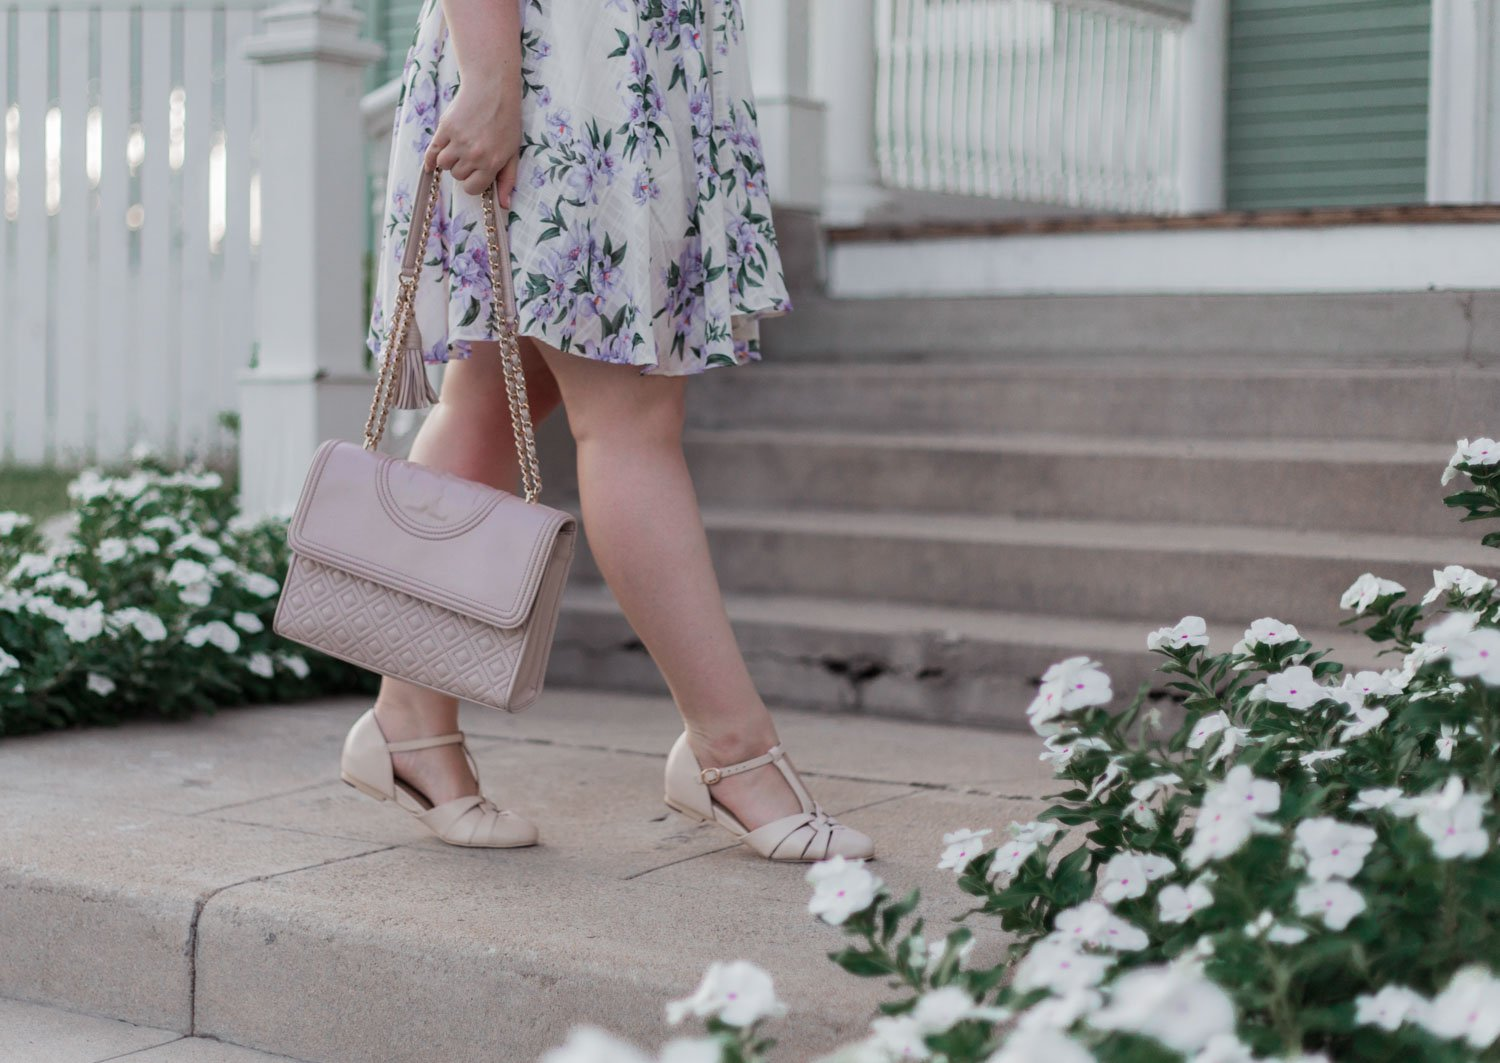 Elizabeth Hugen of Lizzie in Lace styles a purple floral dress and shares her favorite podcasts for bloggers, influencers and creative entrepreneurs